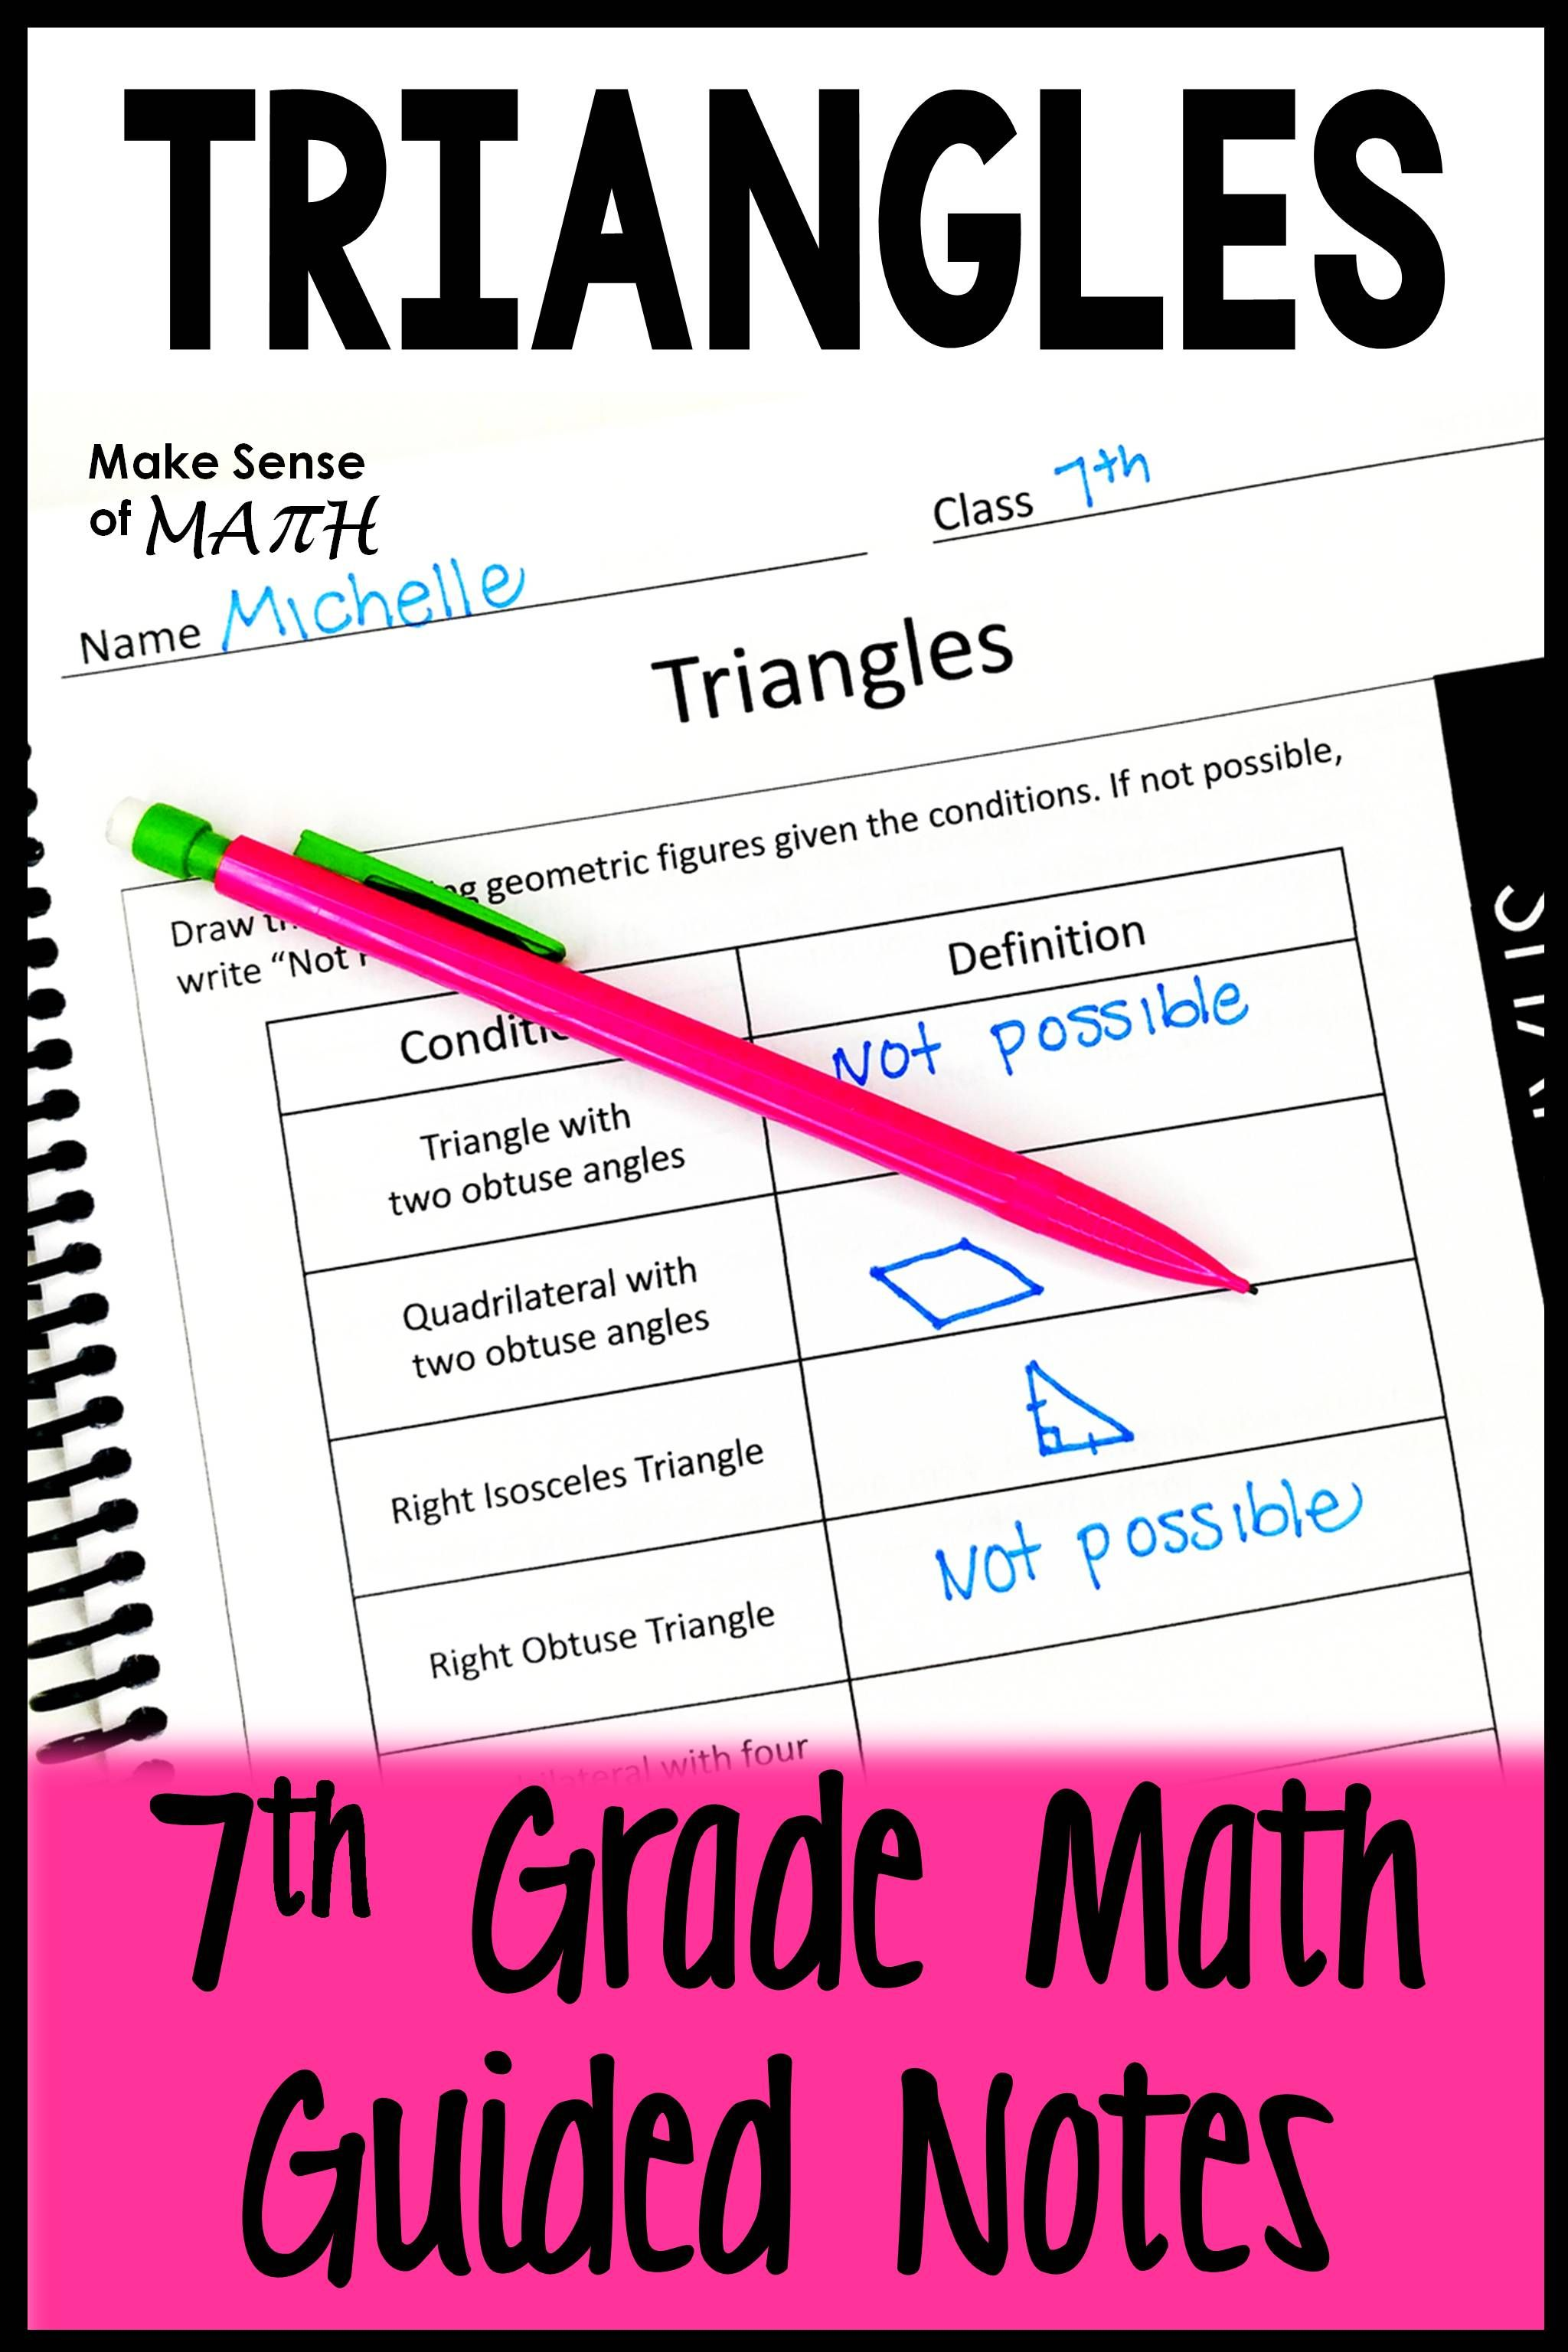 hight resolution of Triangles Notes   Math guided notes